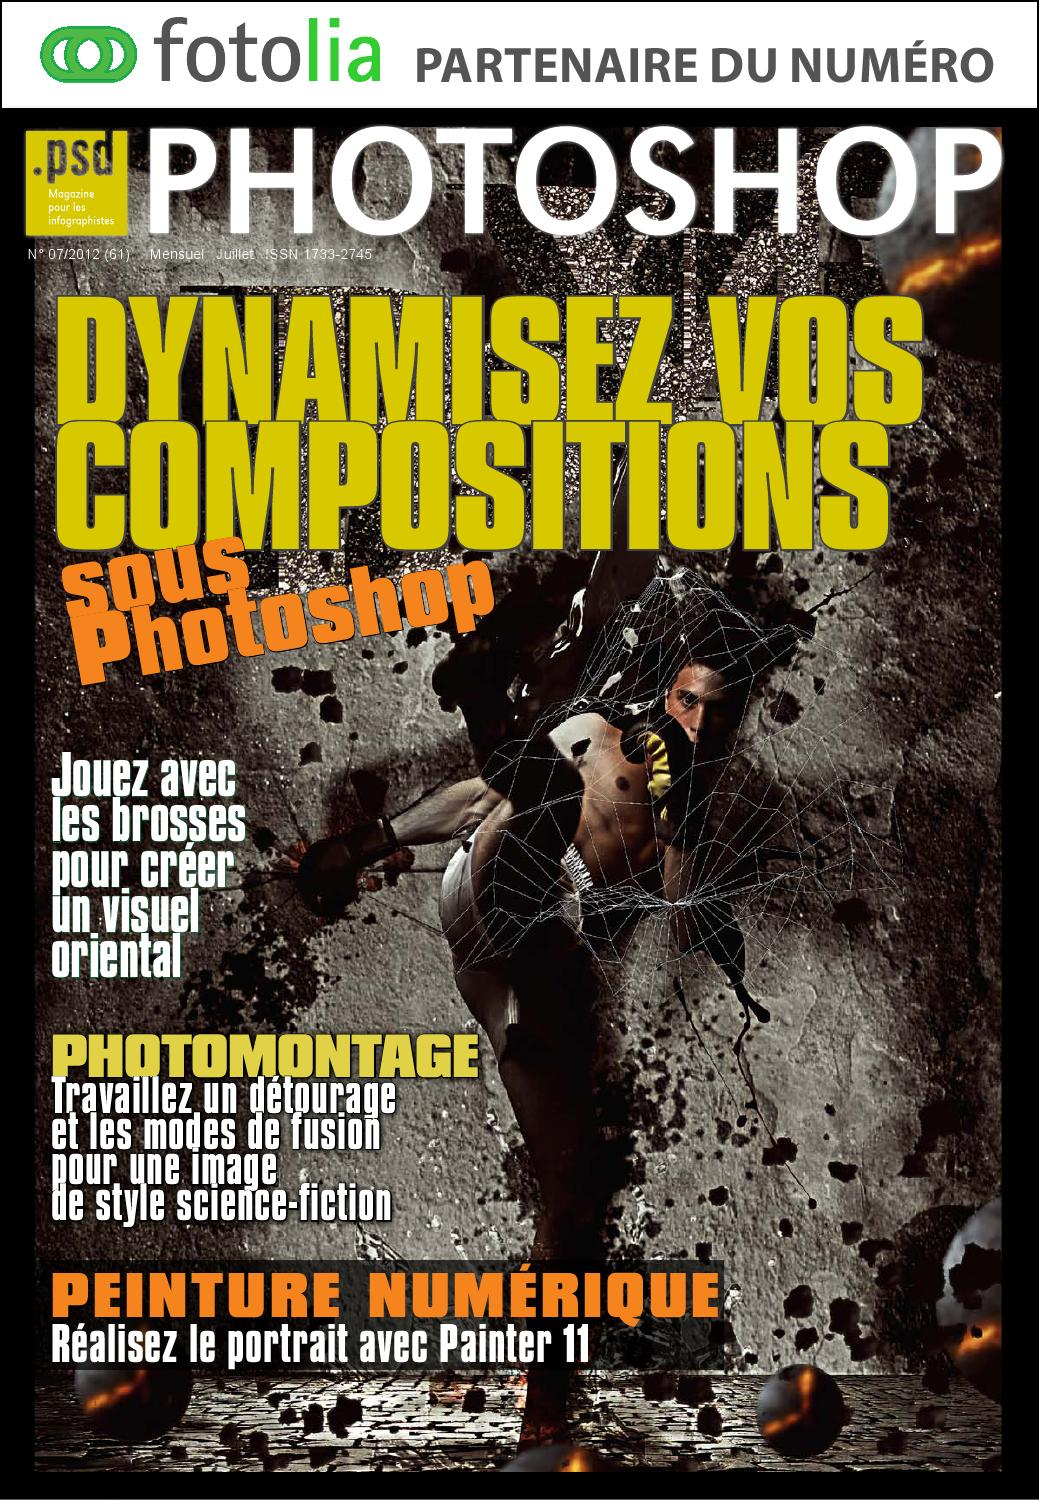 Photoshop No.61 - Dynamisez vos Compostions